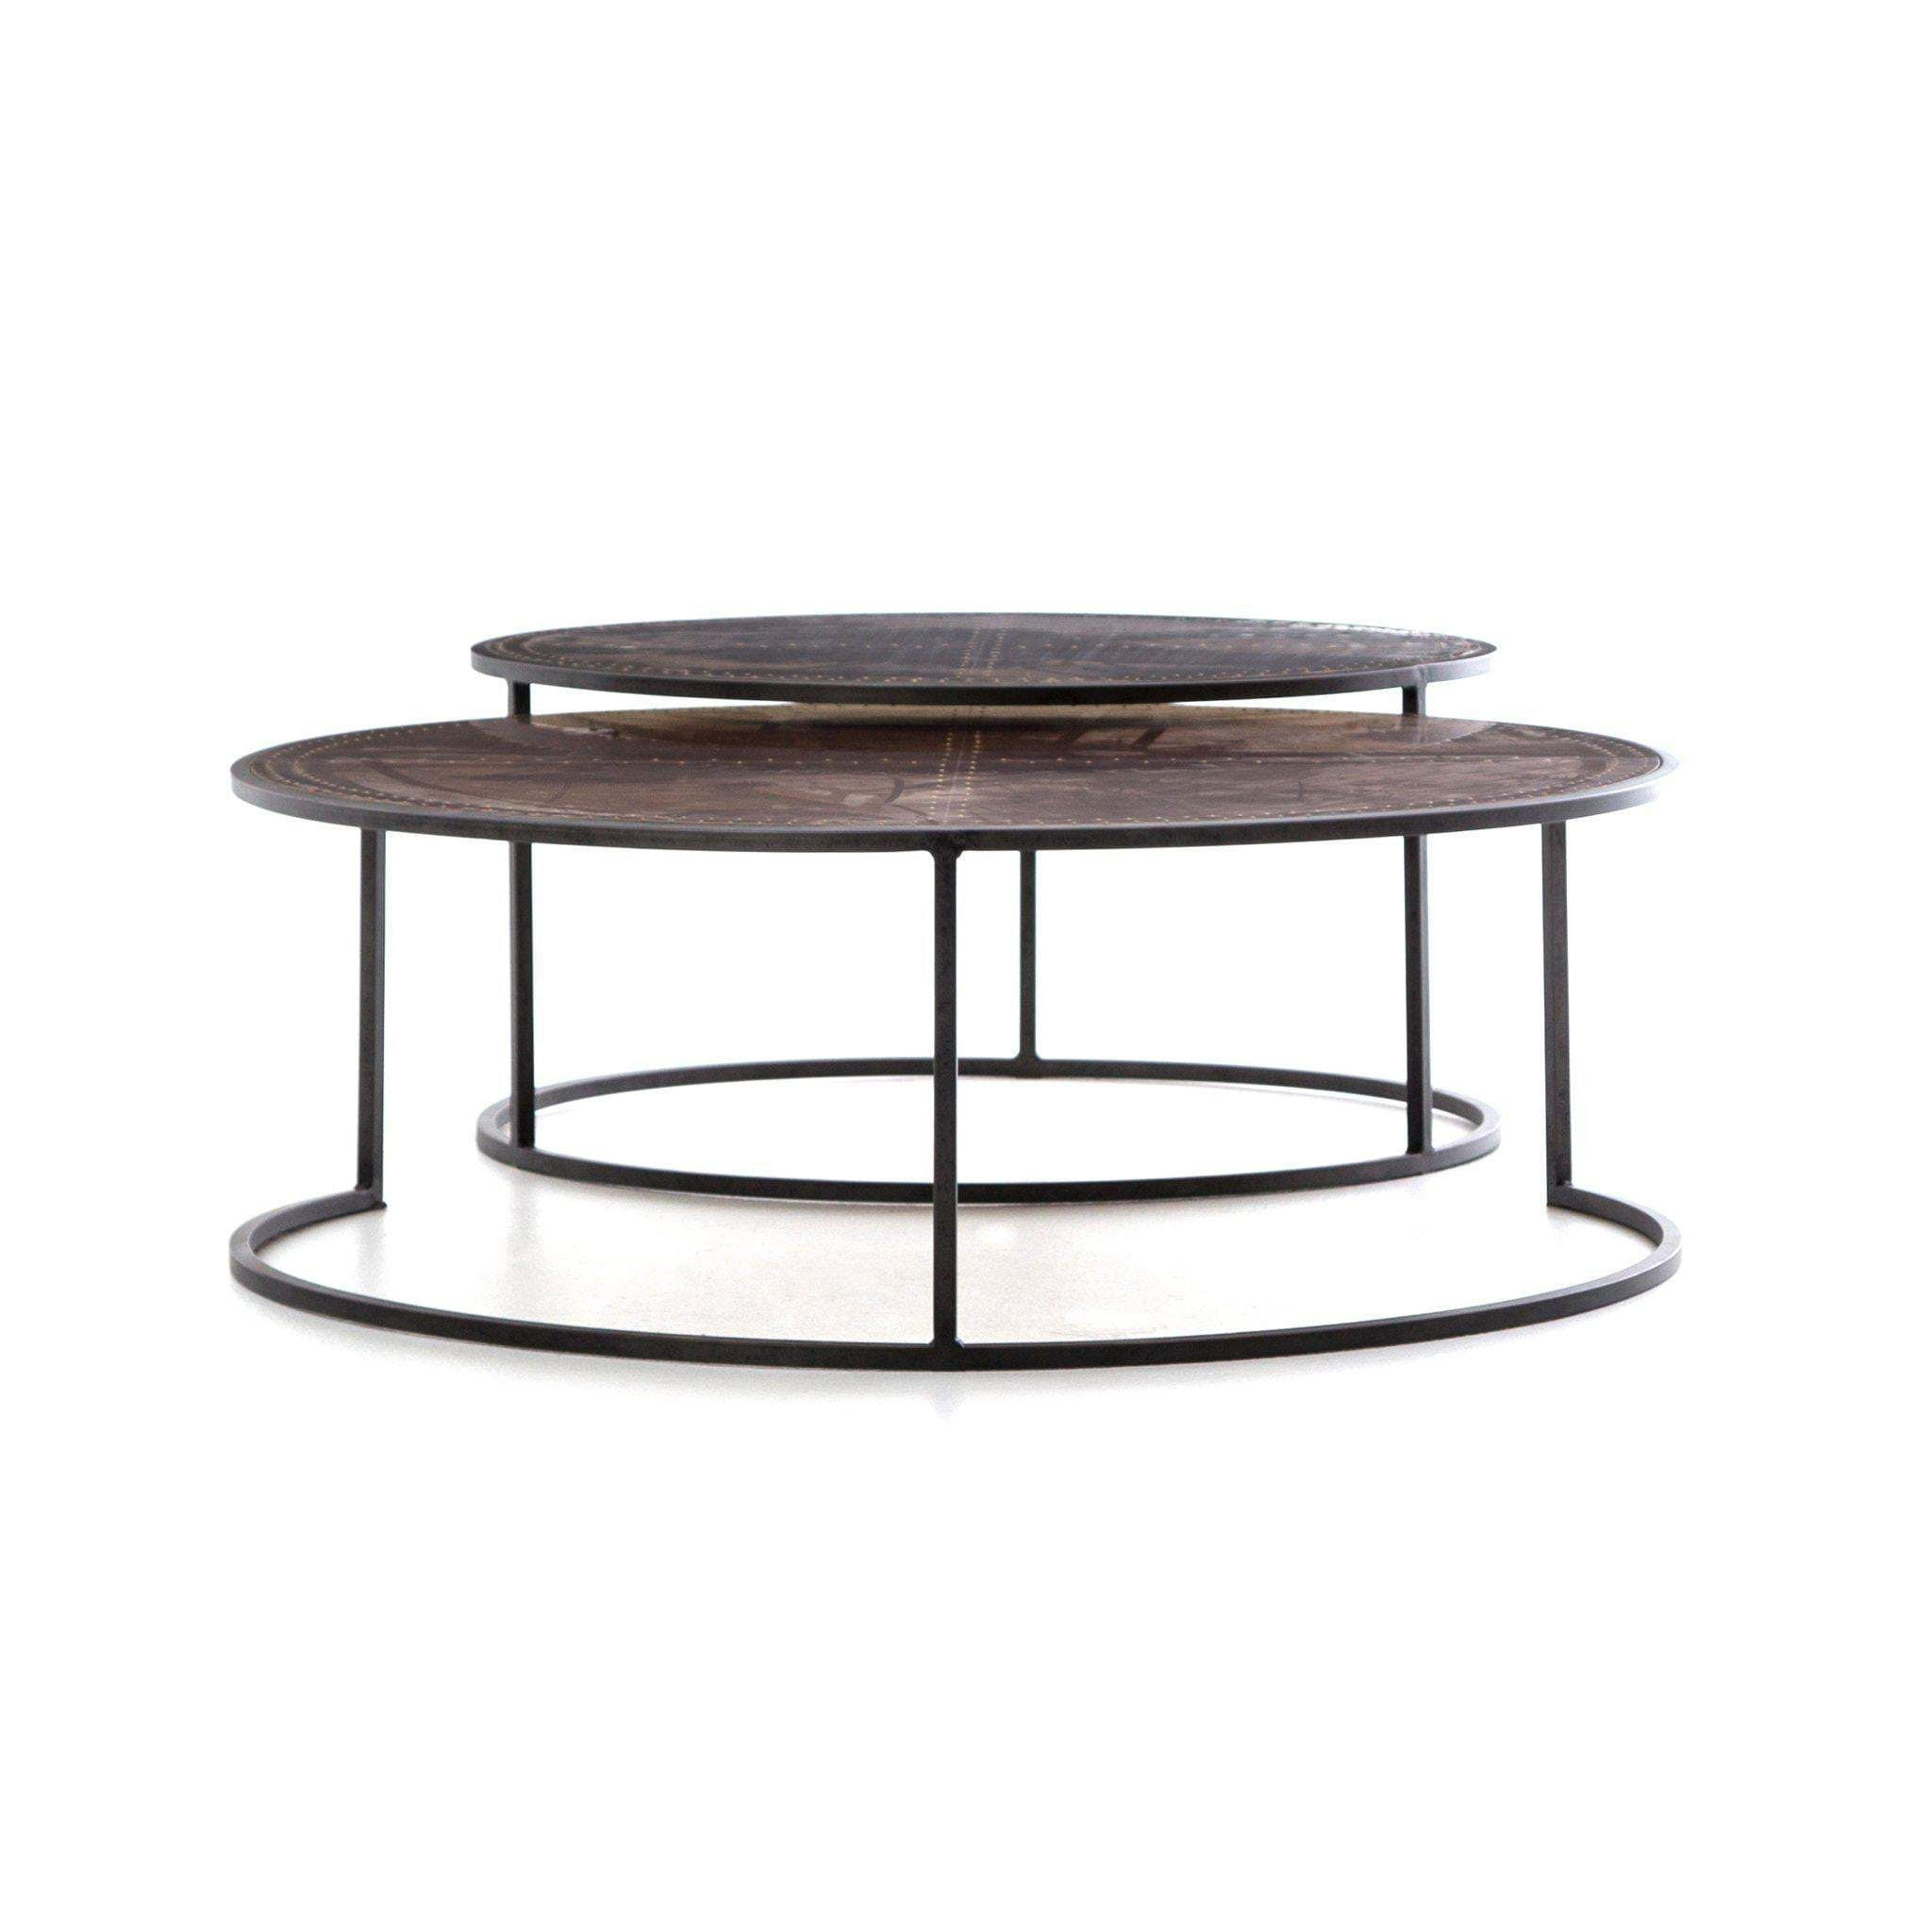 Catalina Nesting Coffee Table Antique Copper In 2021 Nesting Coffee Tables Coffee Table Large Coffee Tables [ 2048 x 2048 Pixel ]